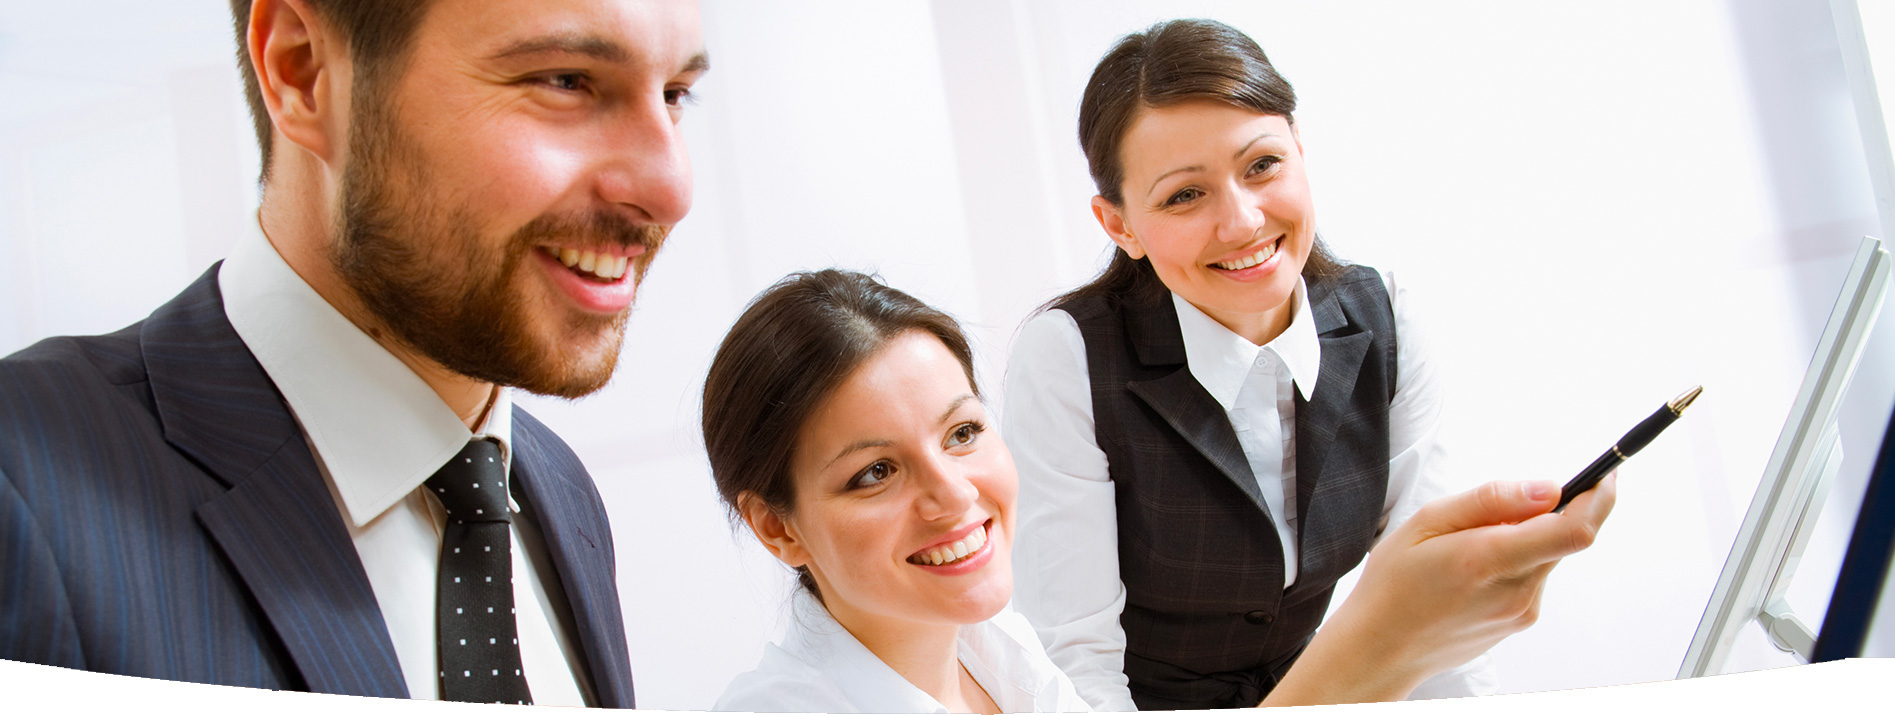 HR Technology and HR Software